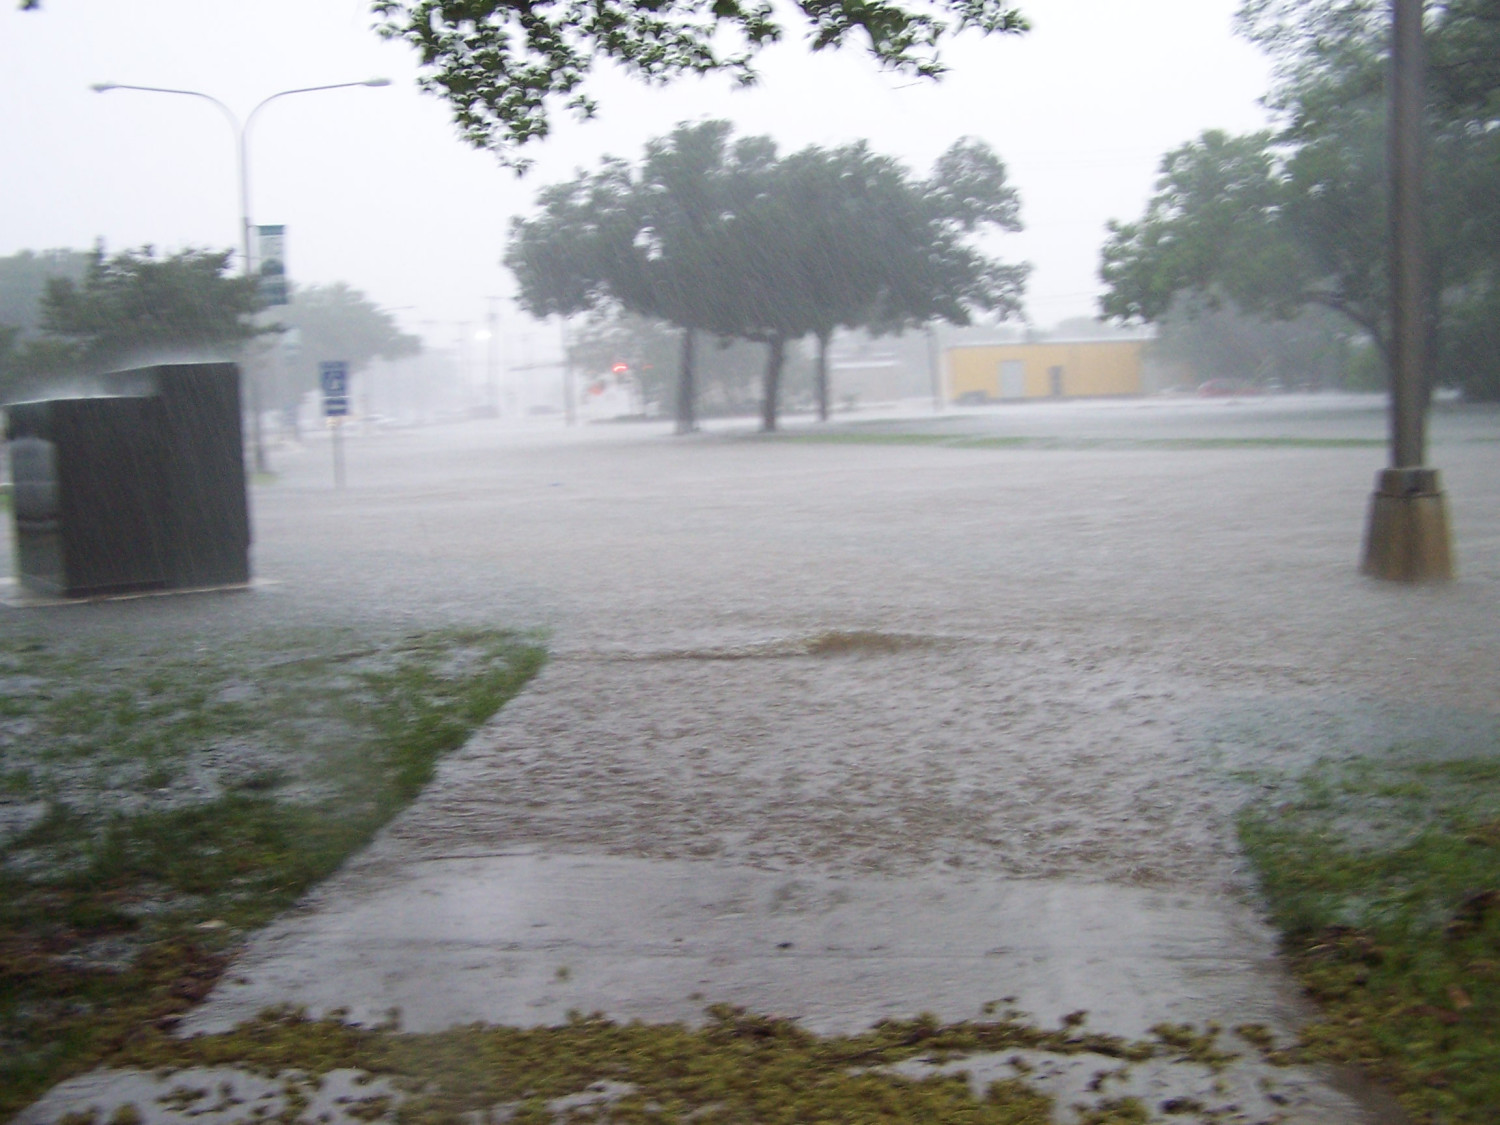 [Photograph of Flood waters at the Denton Public Library, Emily Fowler Central Library]                                                                                                      [Sequence #]: 1 of 1